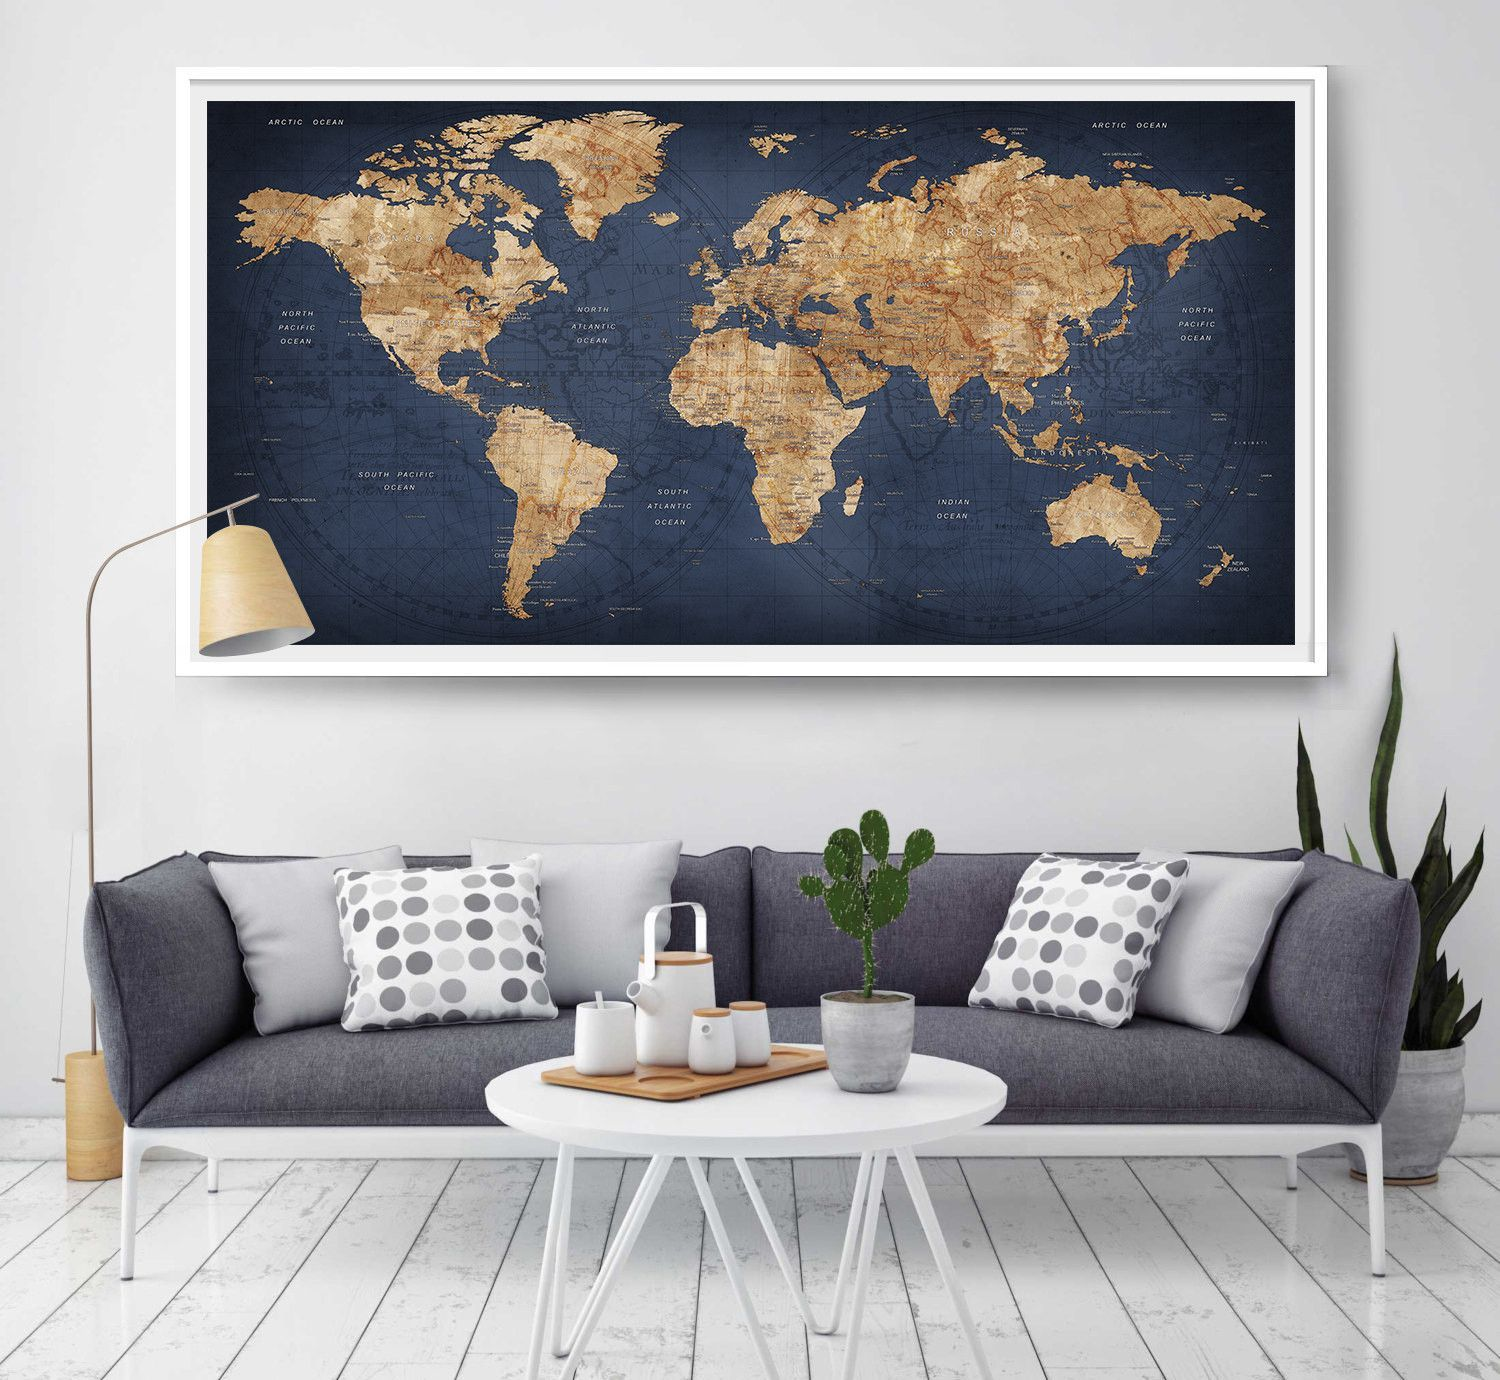 World map push pin large world map abstract world map travel gift world map push pin large world map abstract world map travel gift gumiabroncs Image collections